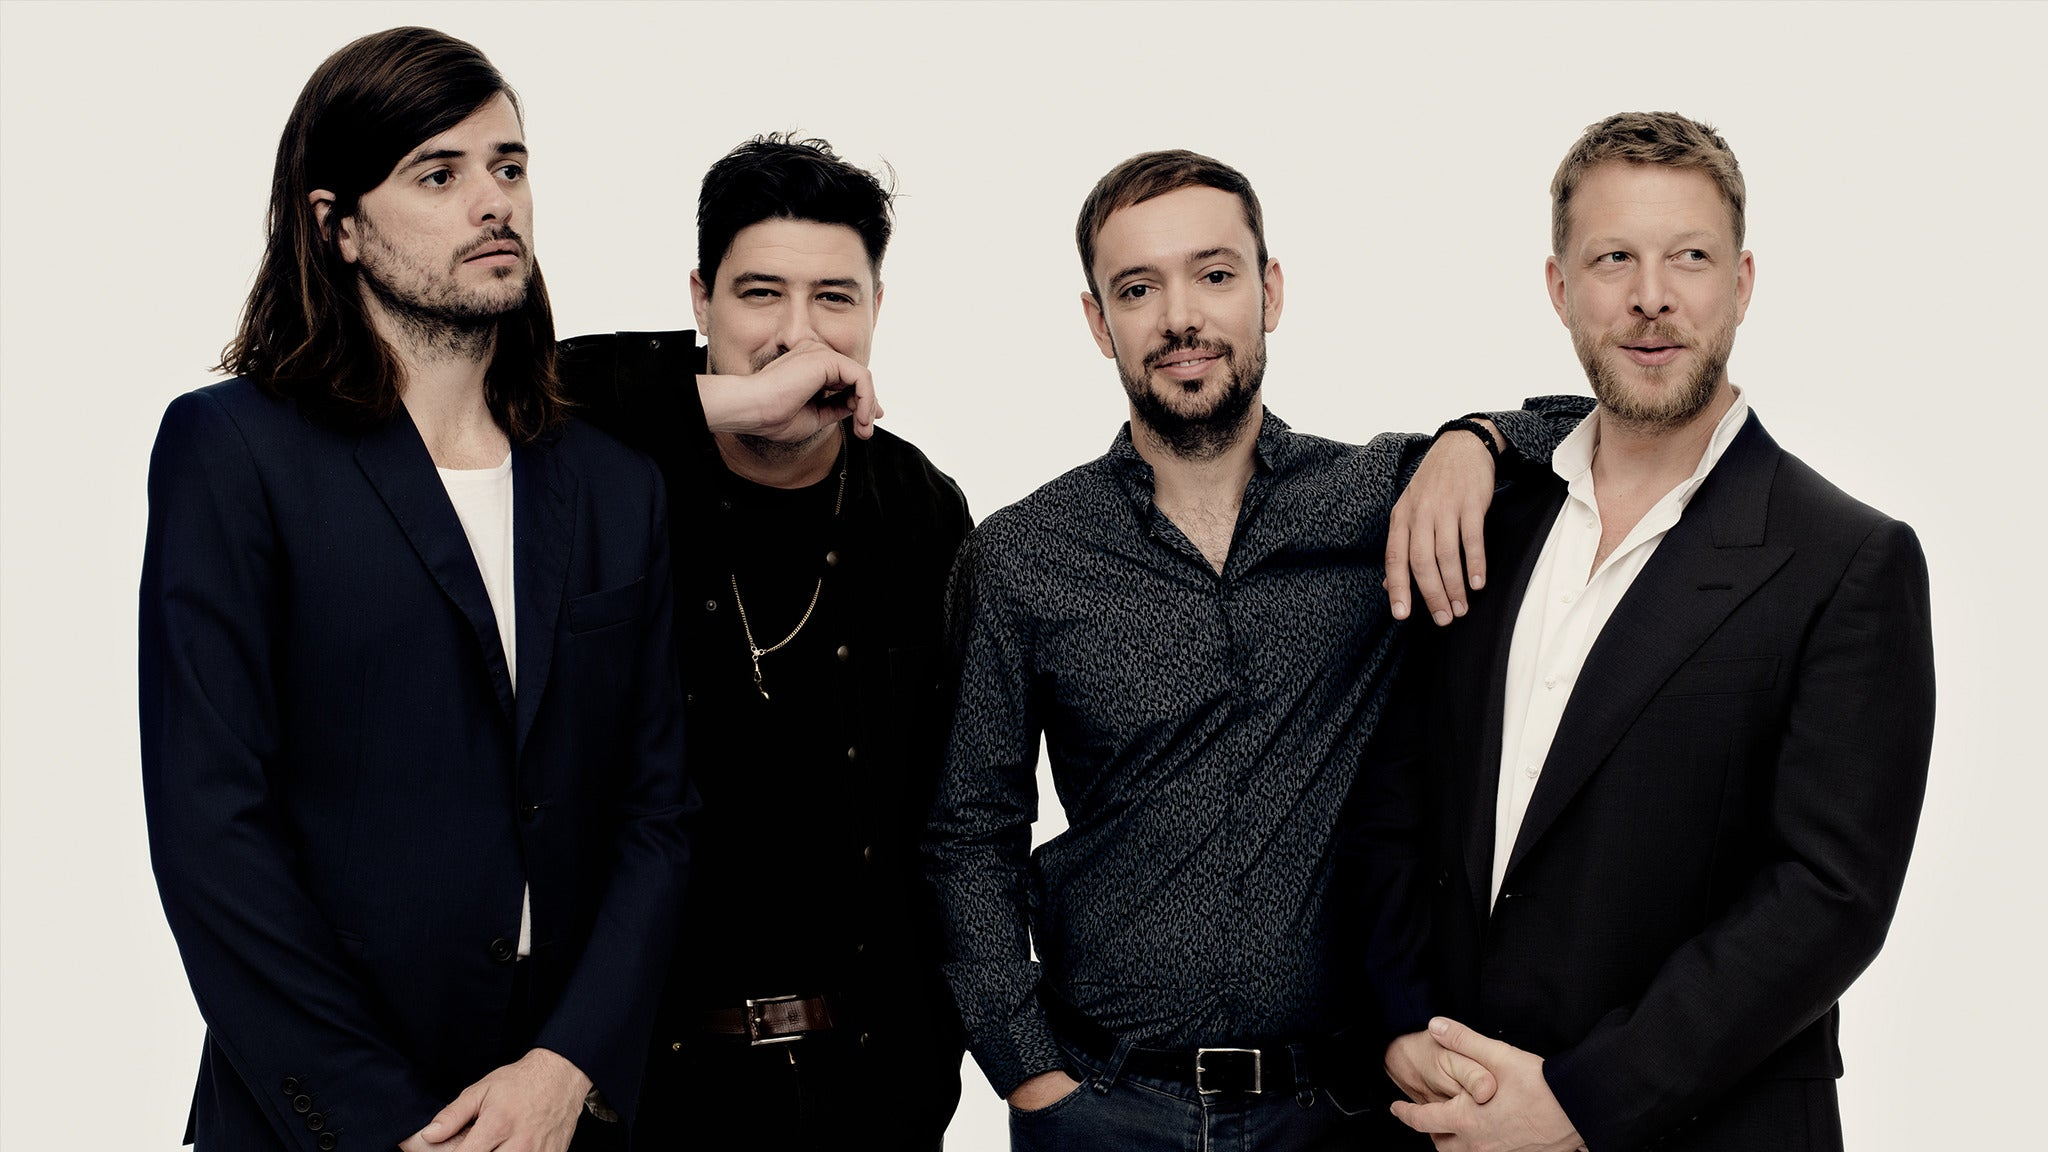 Mumford & Sons - Delta Tour 2019 at Chesapeake Energy Arena